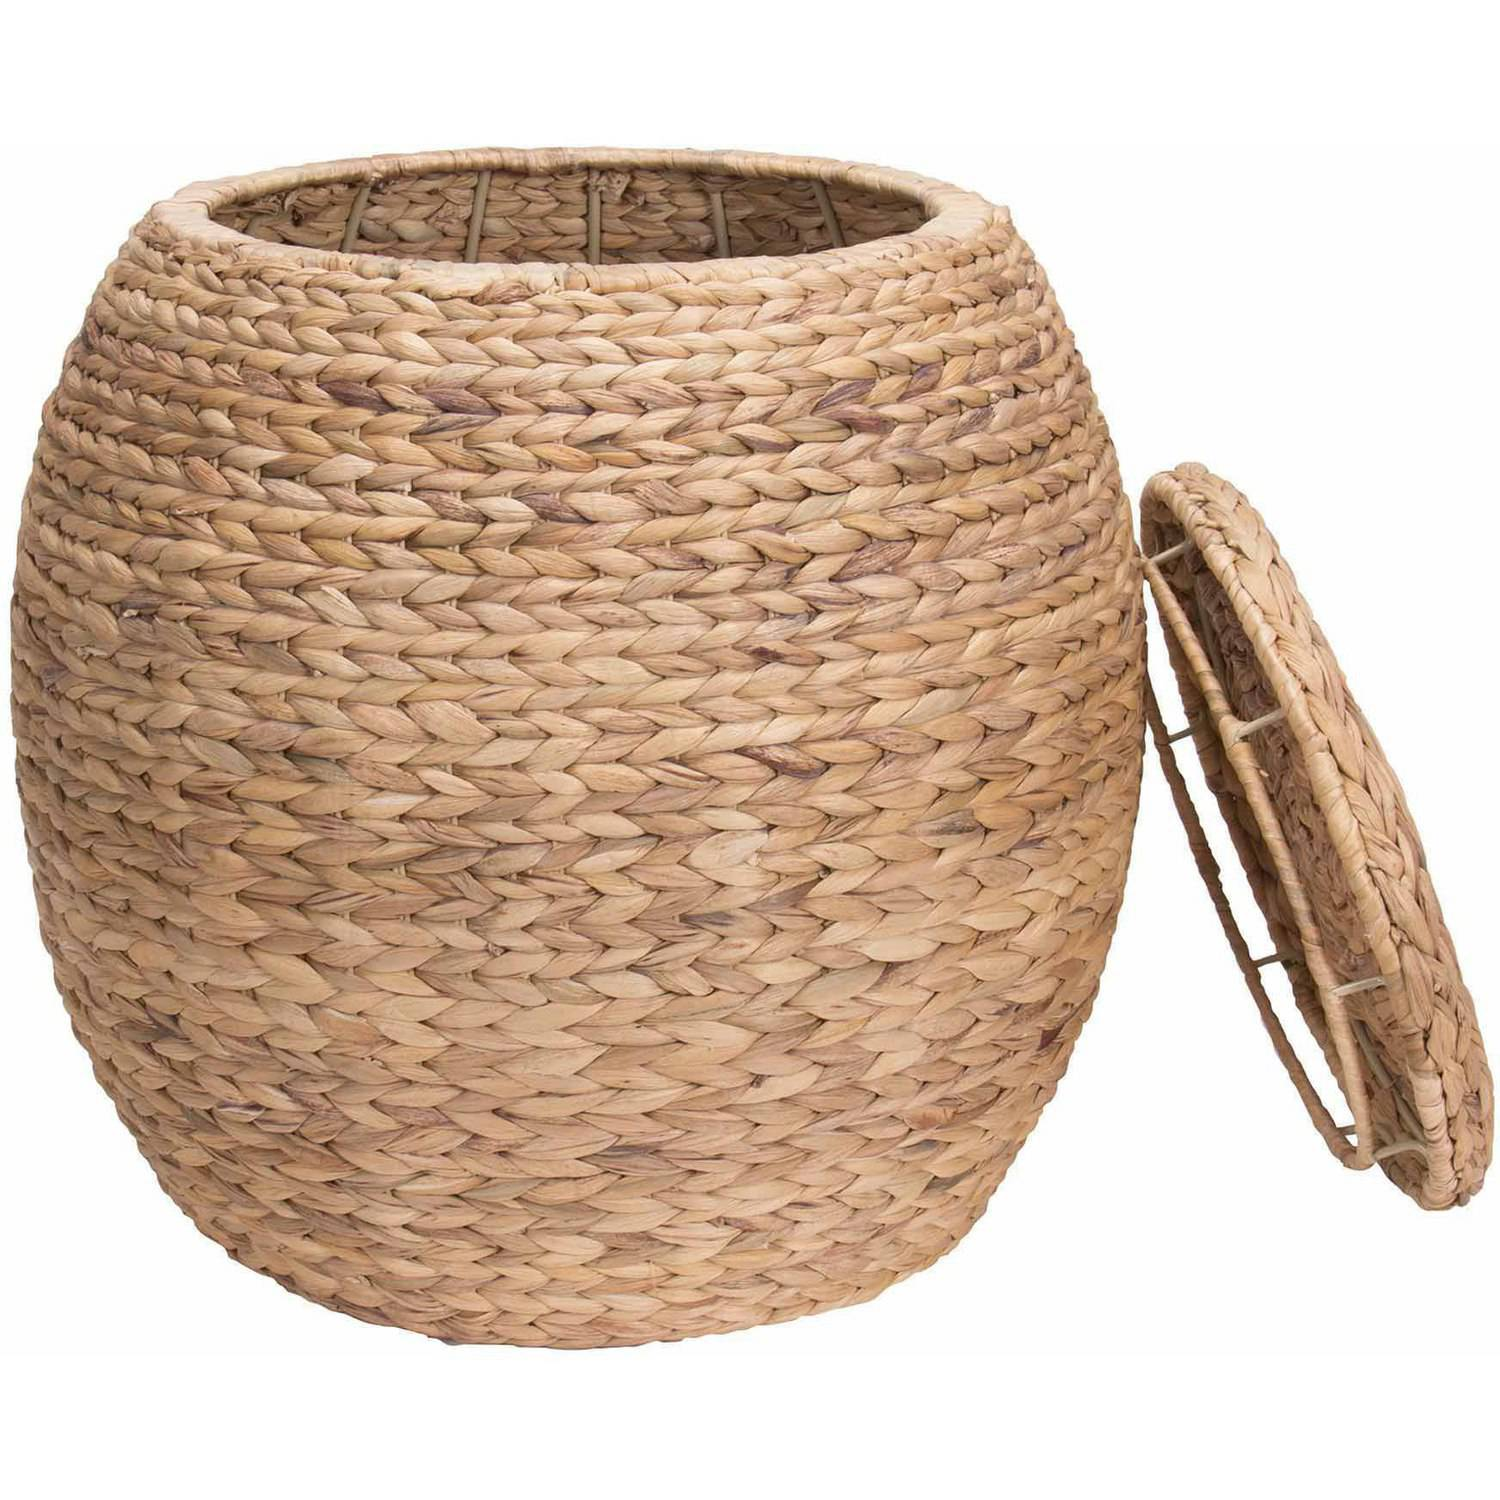 Household Essentials Large Round Water Hyacinth Wicker Storage Basket with  Lid - Walmart.com